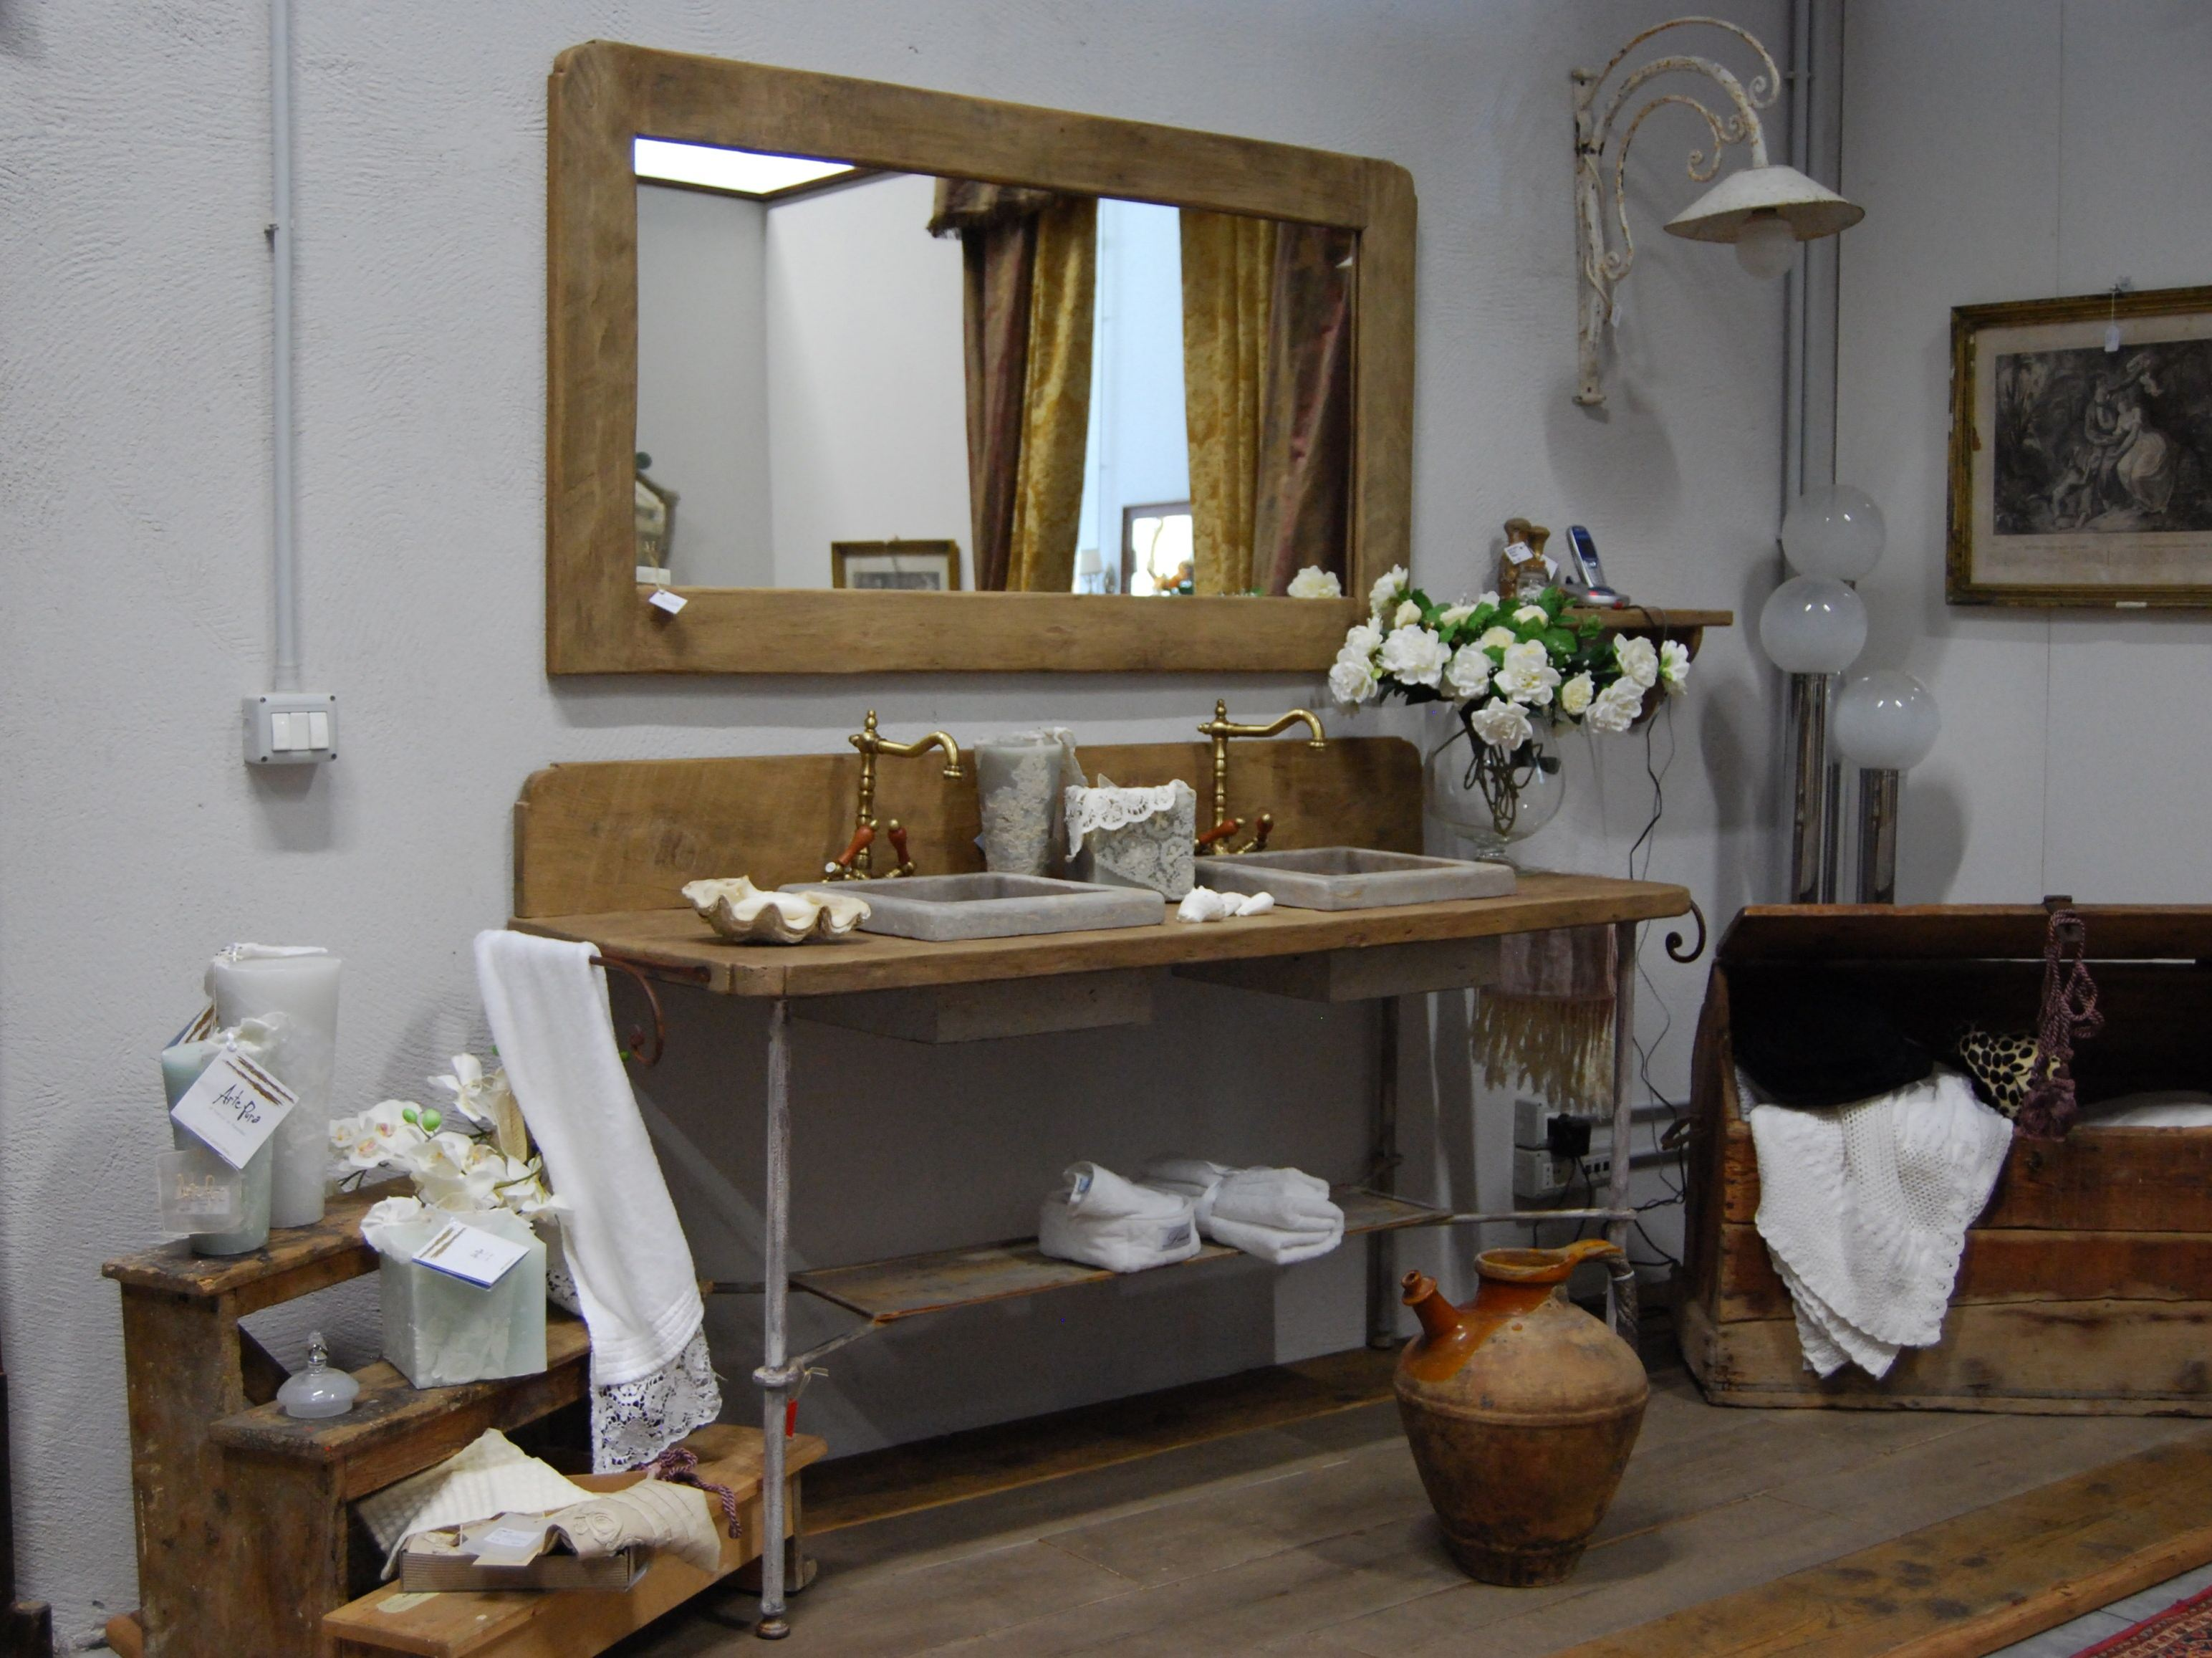 Bathroom furniture set romarin by bleu provence - Salle de bain shabby ...